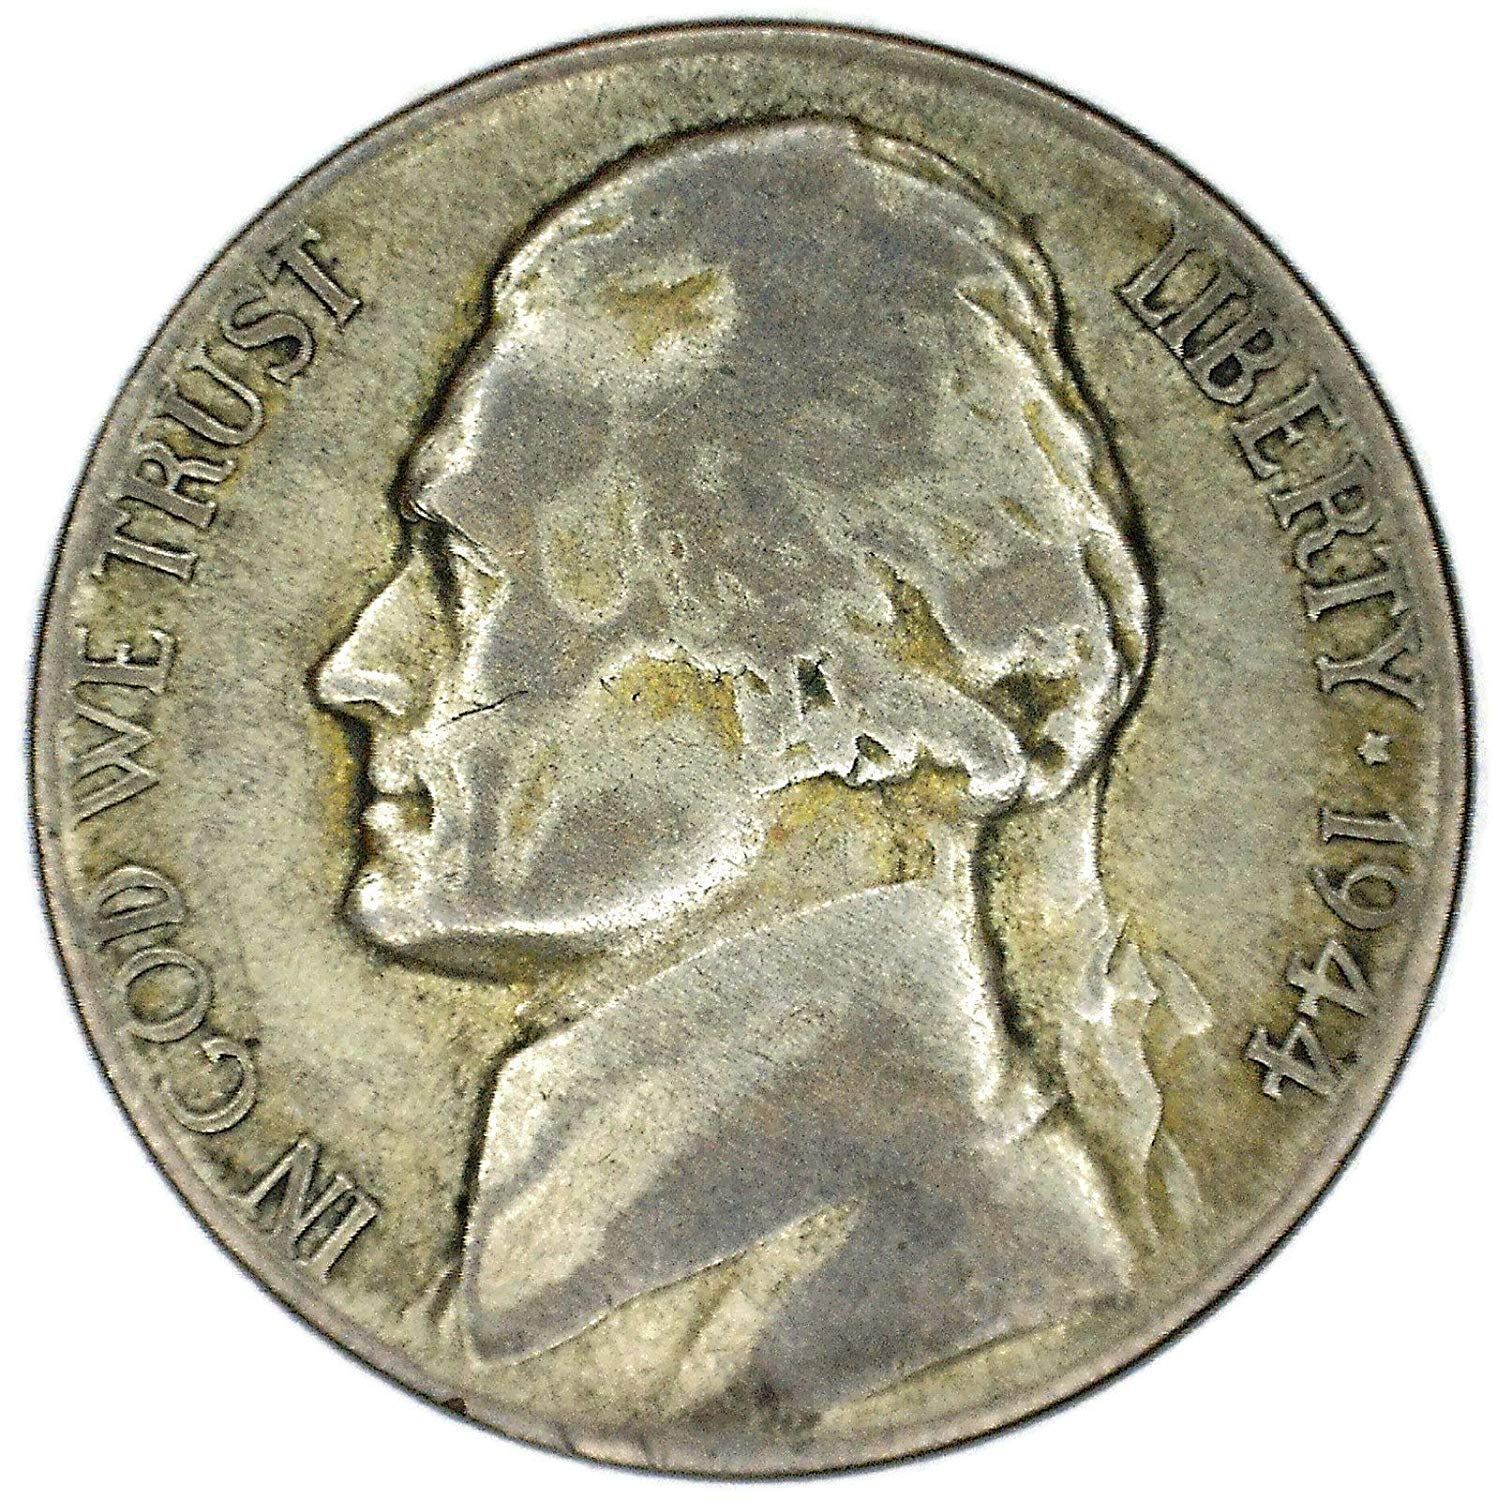 WAR 5 cents = .05626 / each